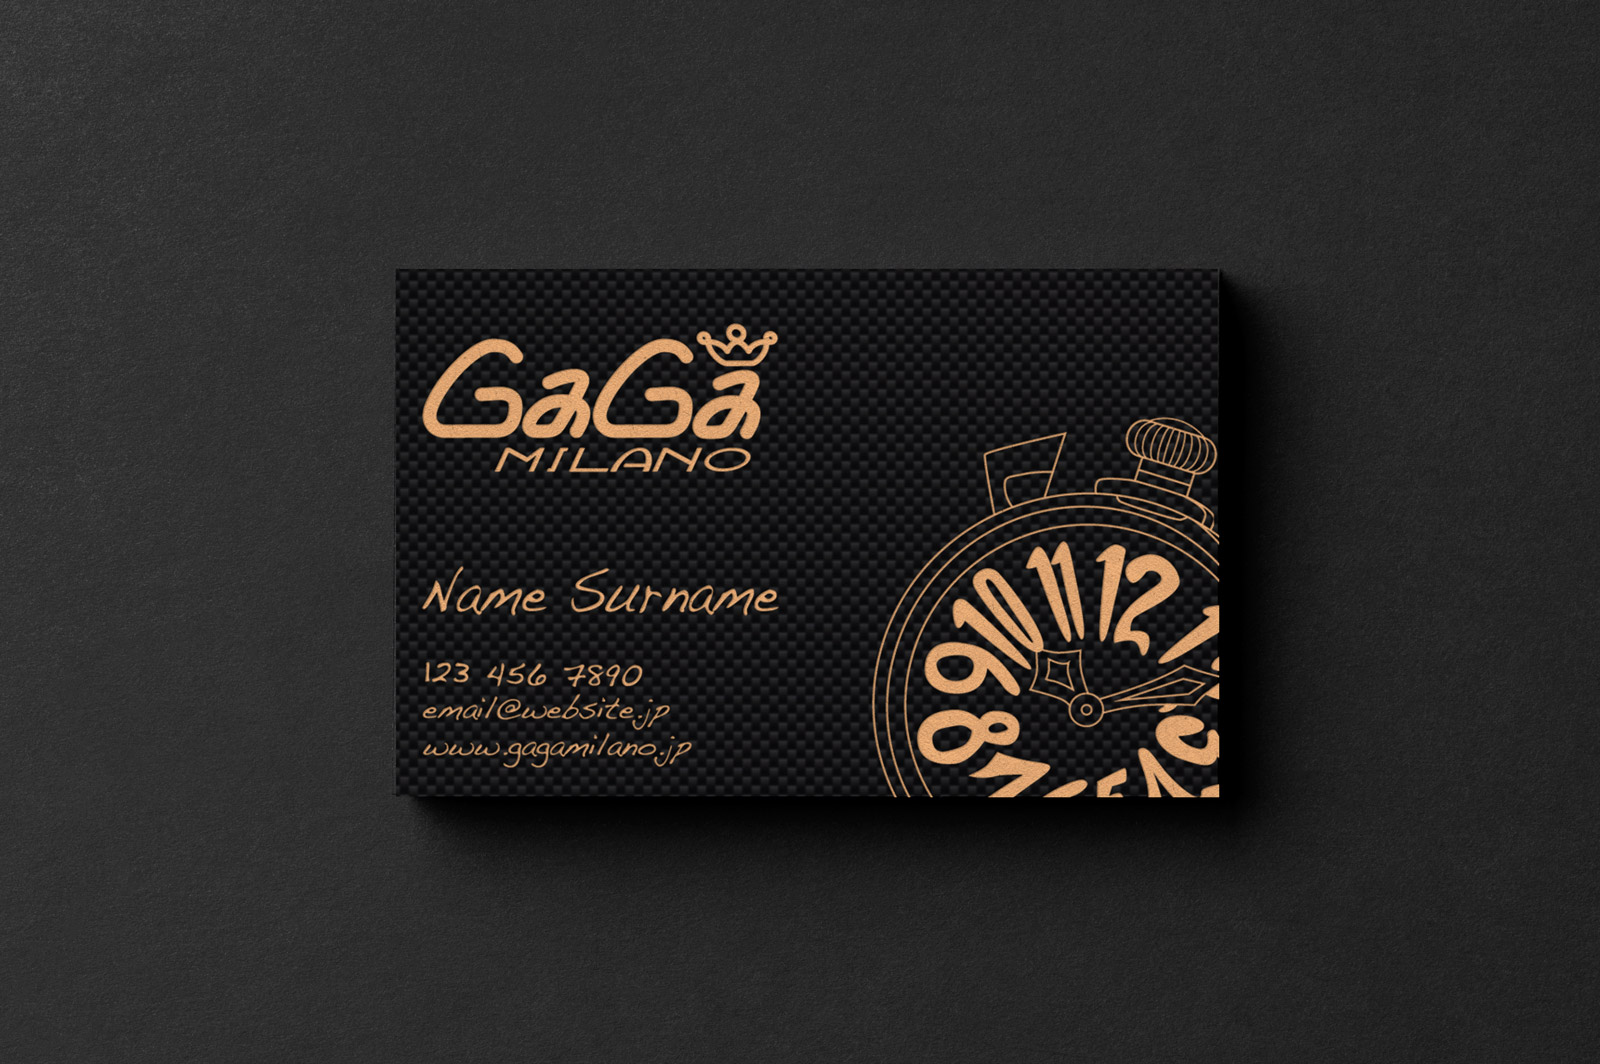 Outstanding carbon fibre business cards photos business card ideas carbon fibre business cards cardissimo your identity reheart Gallery